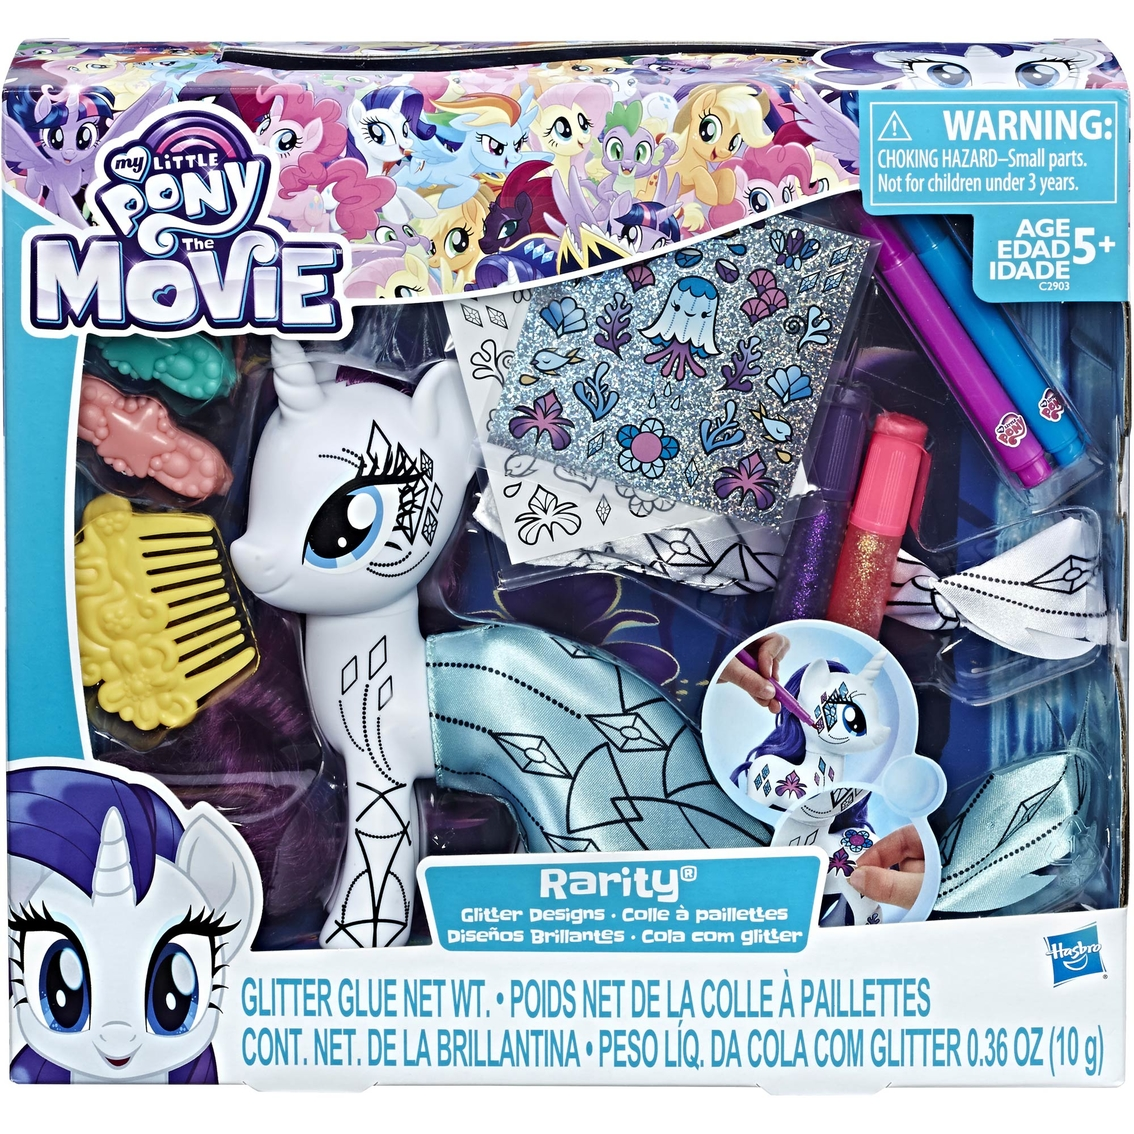 - My Little Pony The Movie Rarity Glitter Designs Coloring